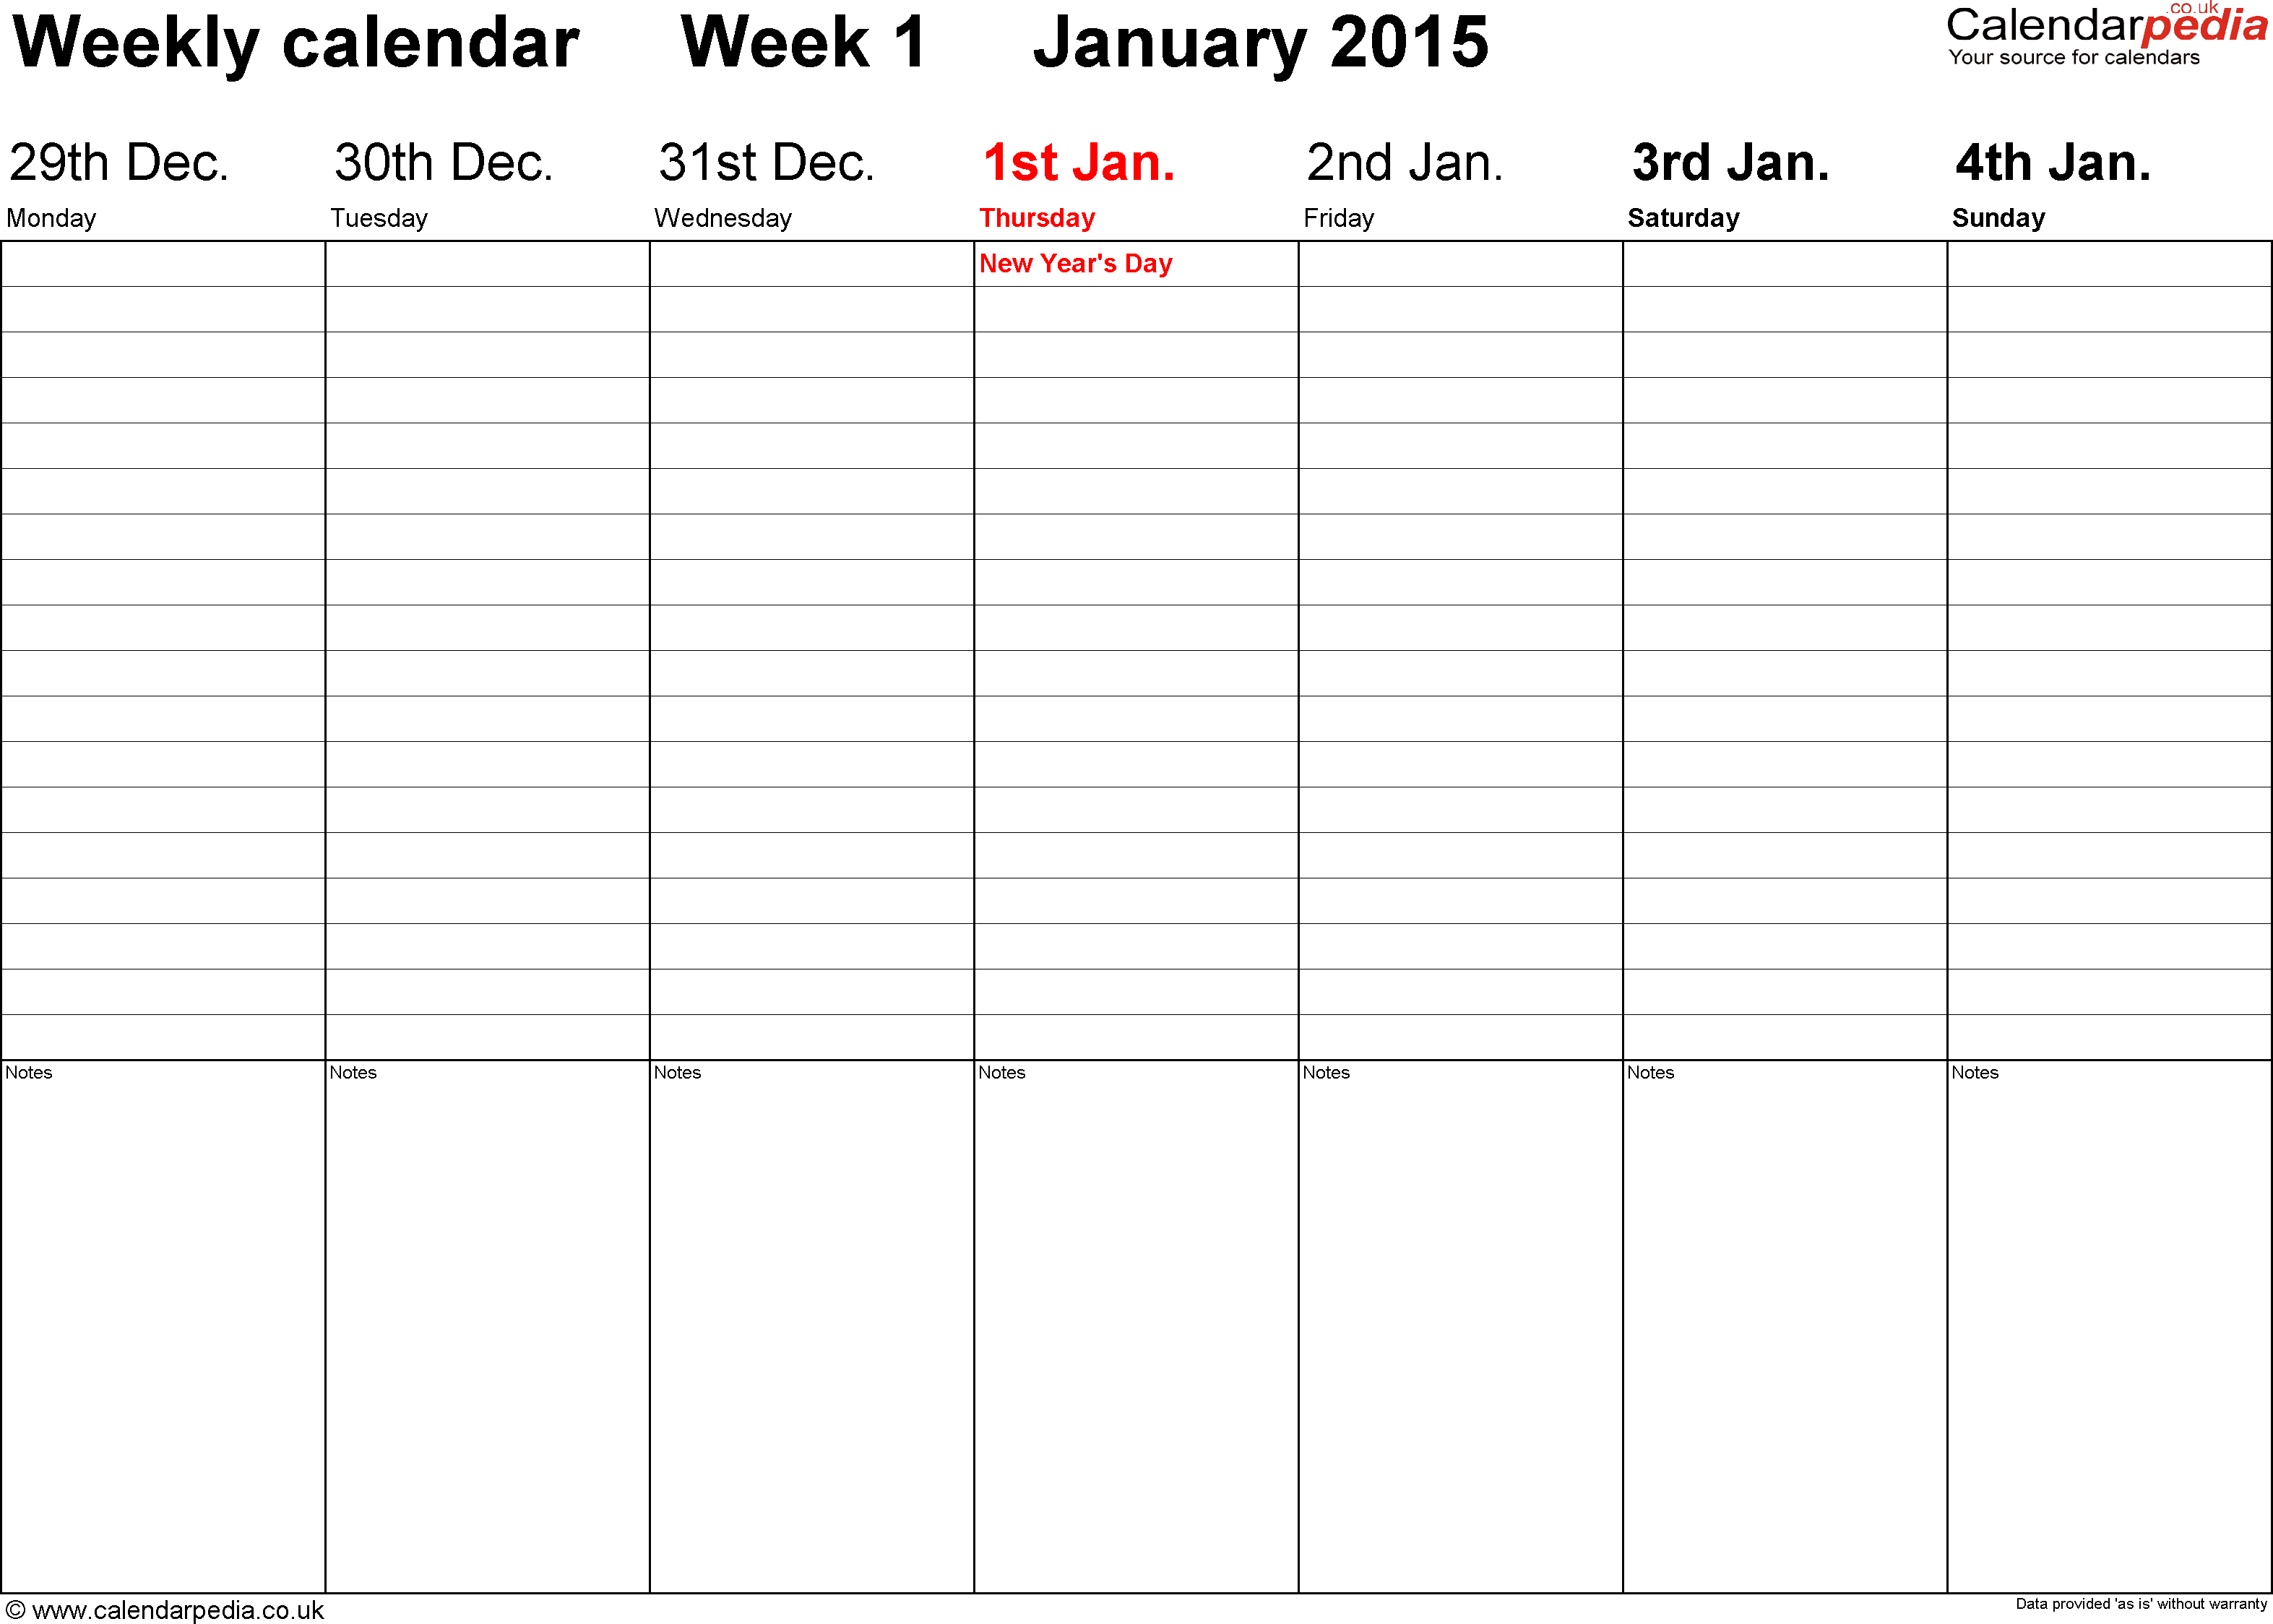 2015 monthly calendar template for word - weekly calendar 2015 uk free printable templates for word